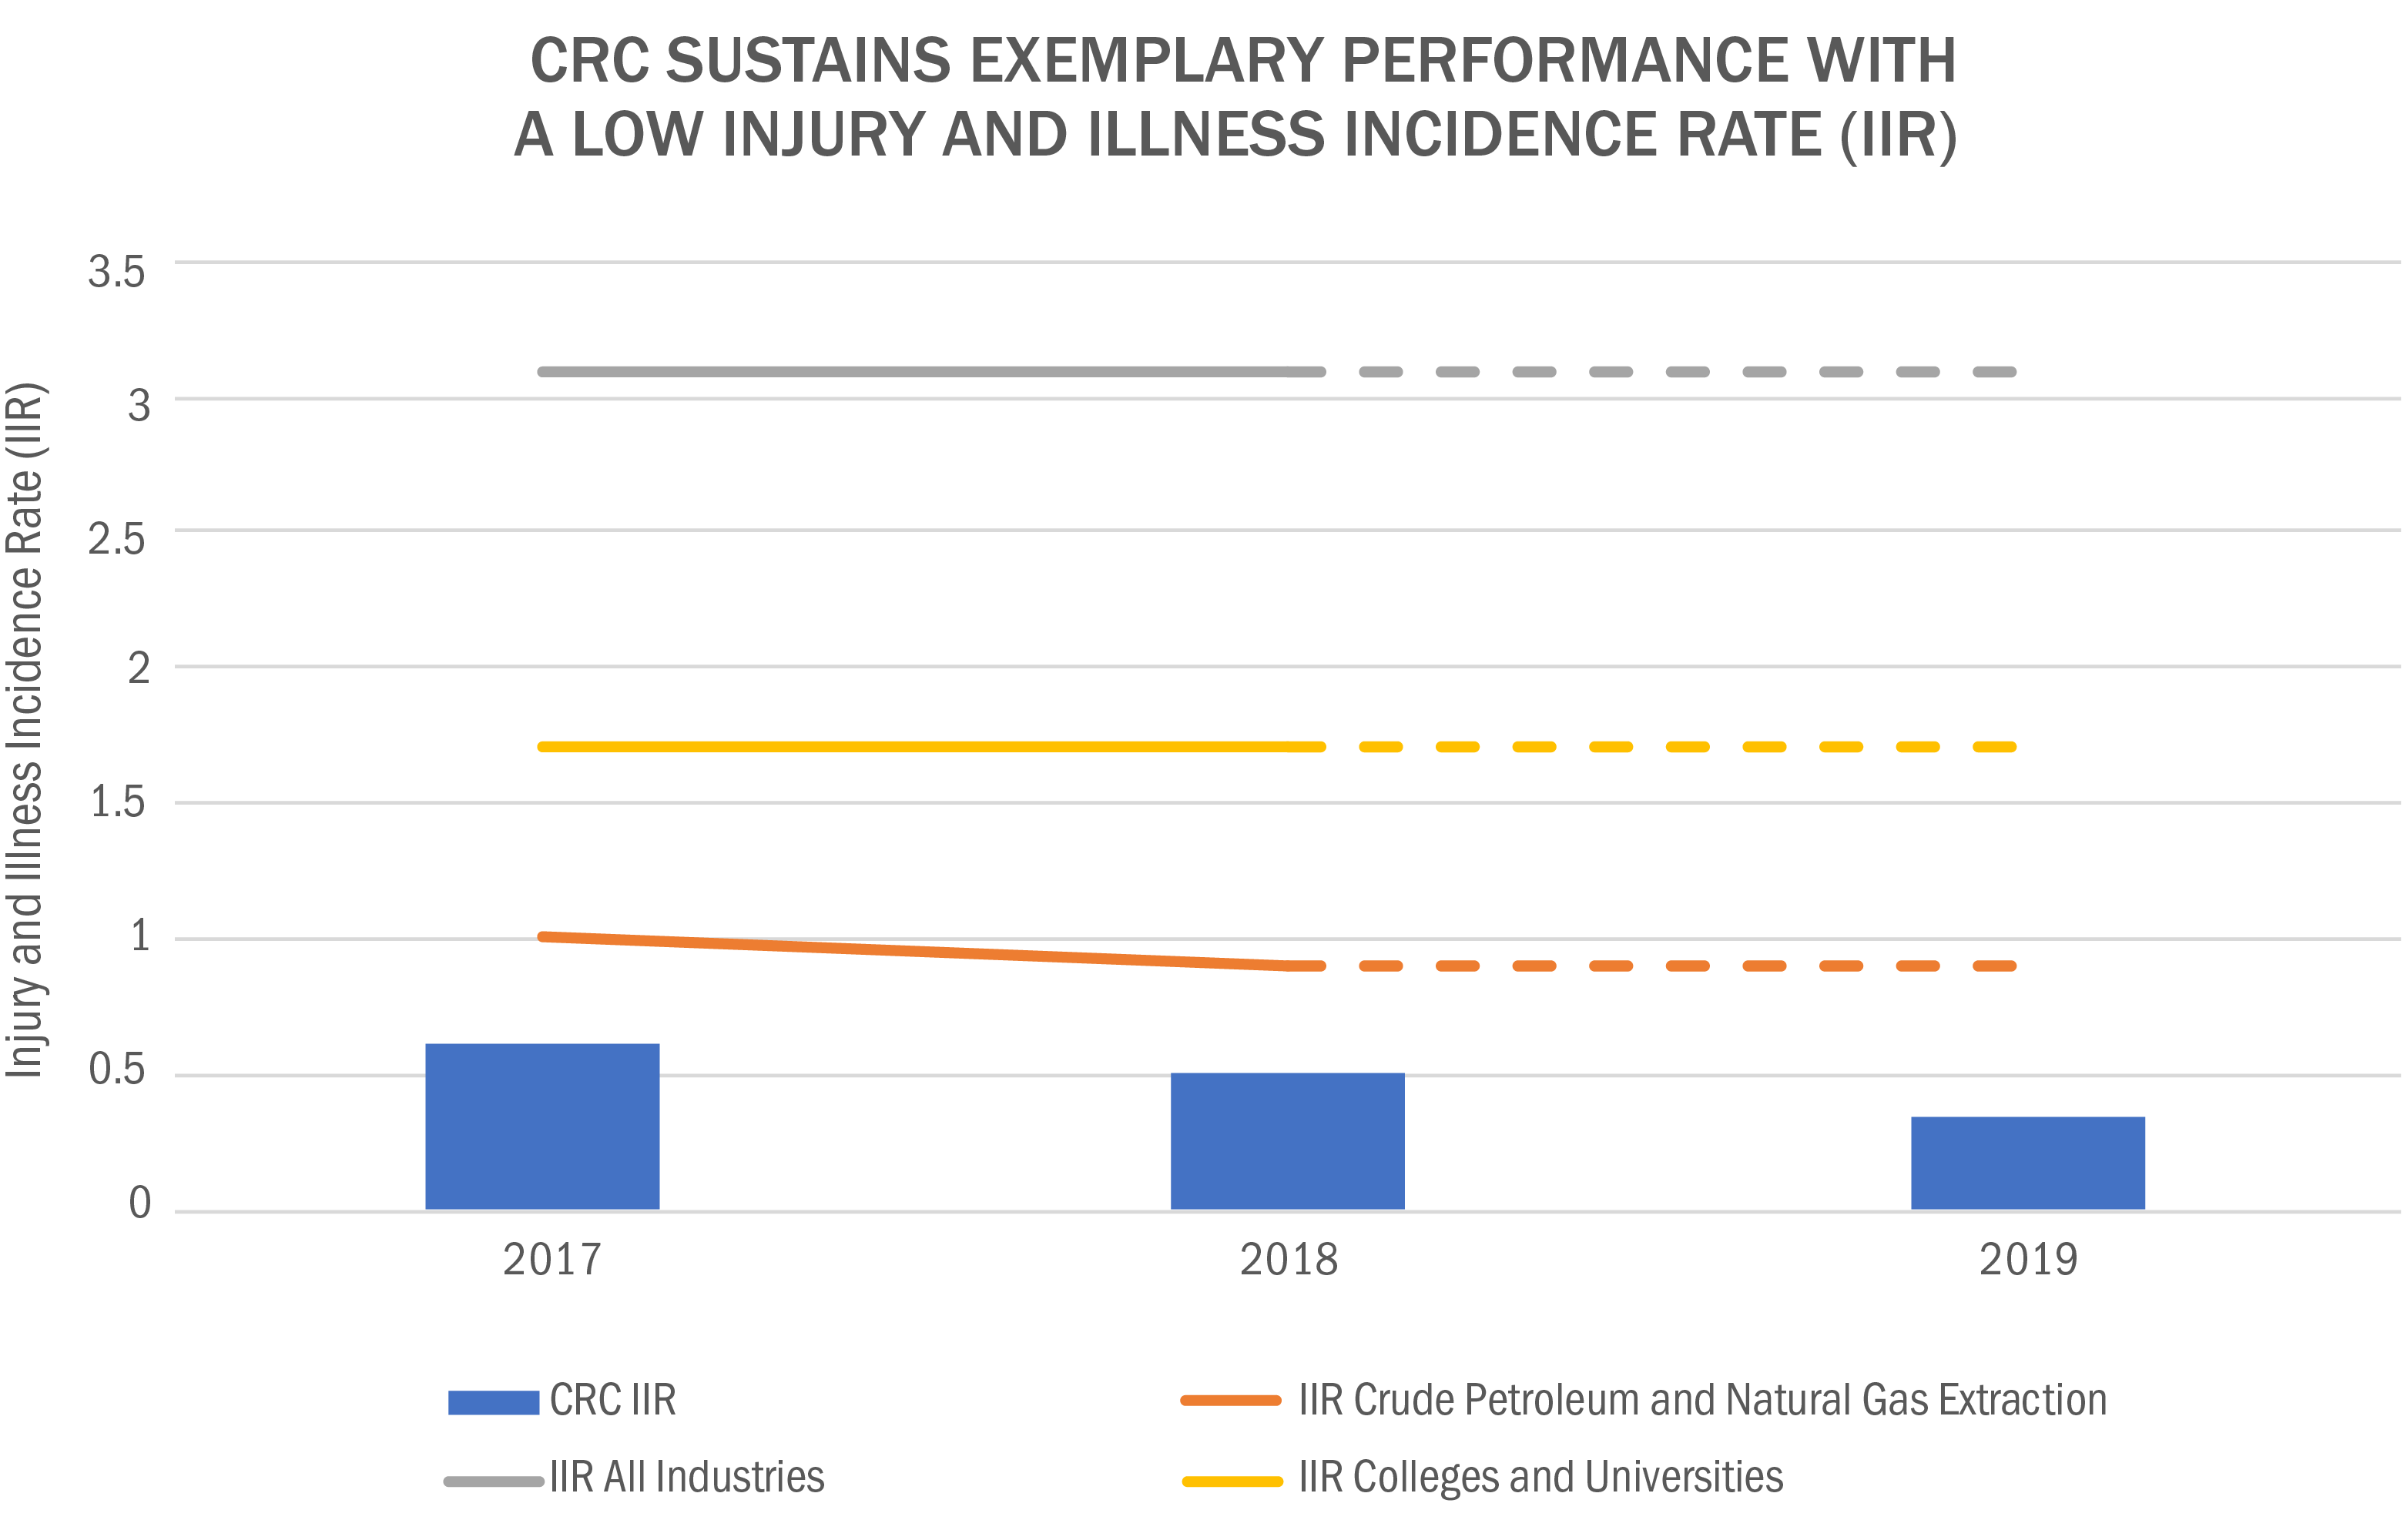 CRC Sustains Exemplary Performance with a Low Injury and Illness Incidence Rate (IIR) Image